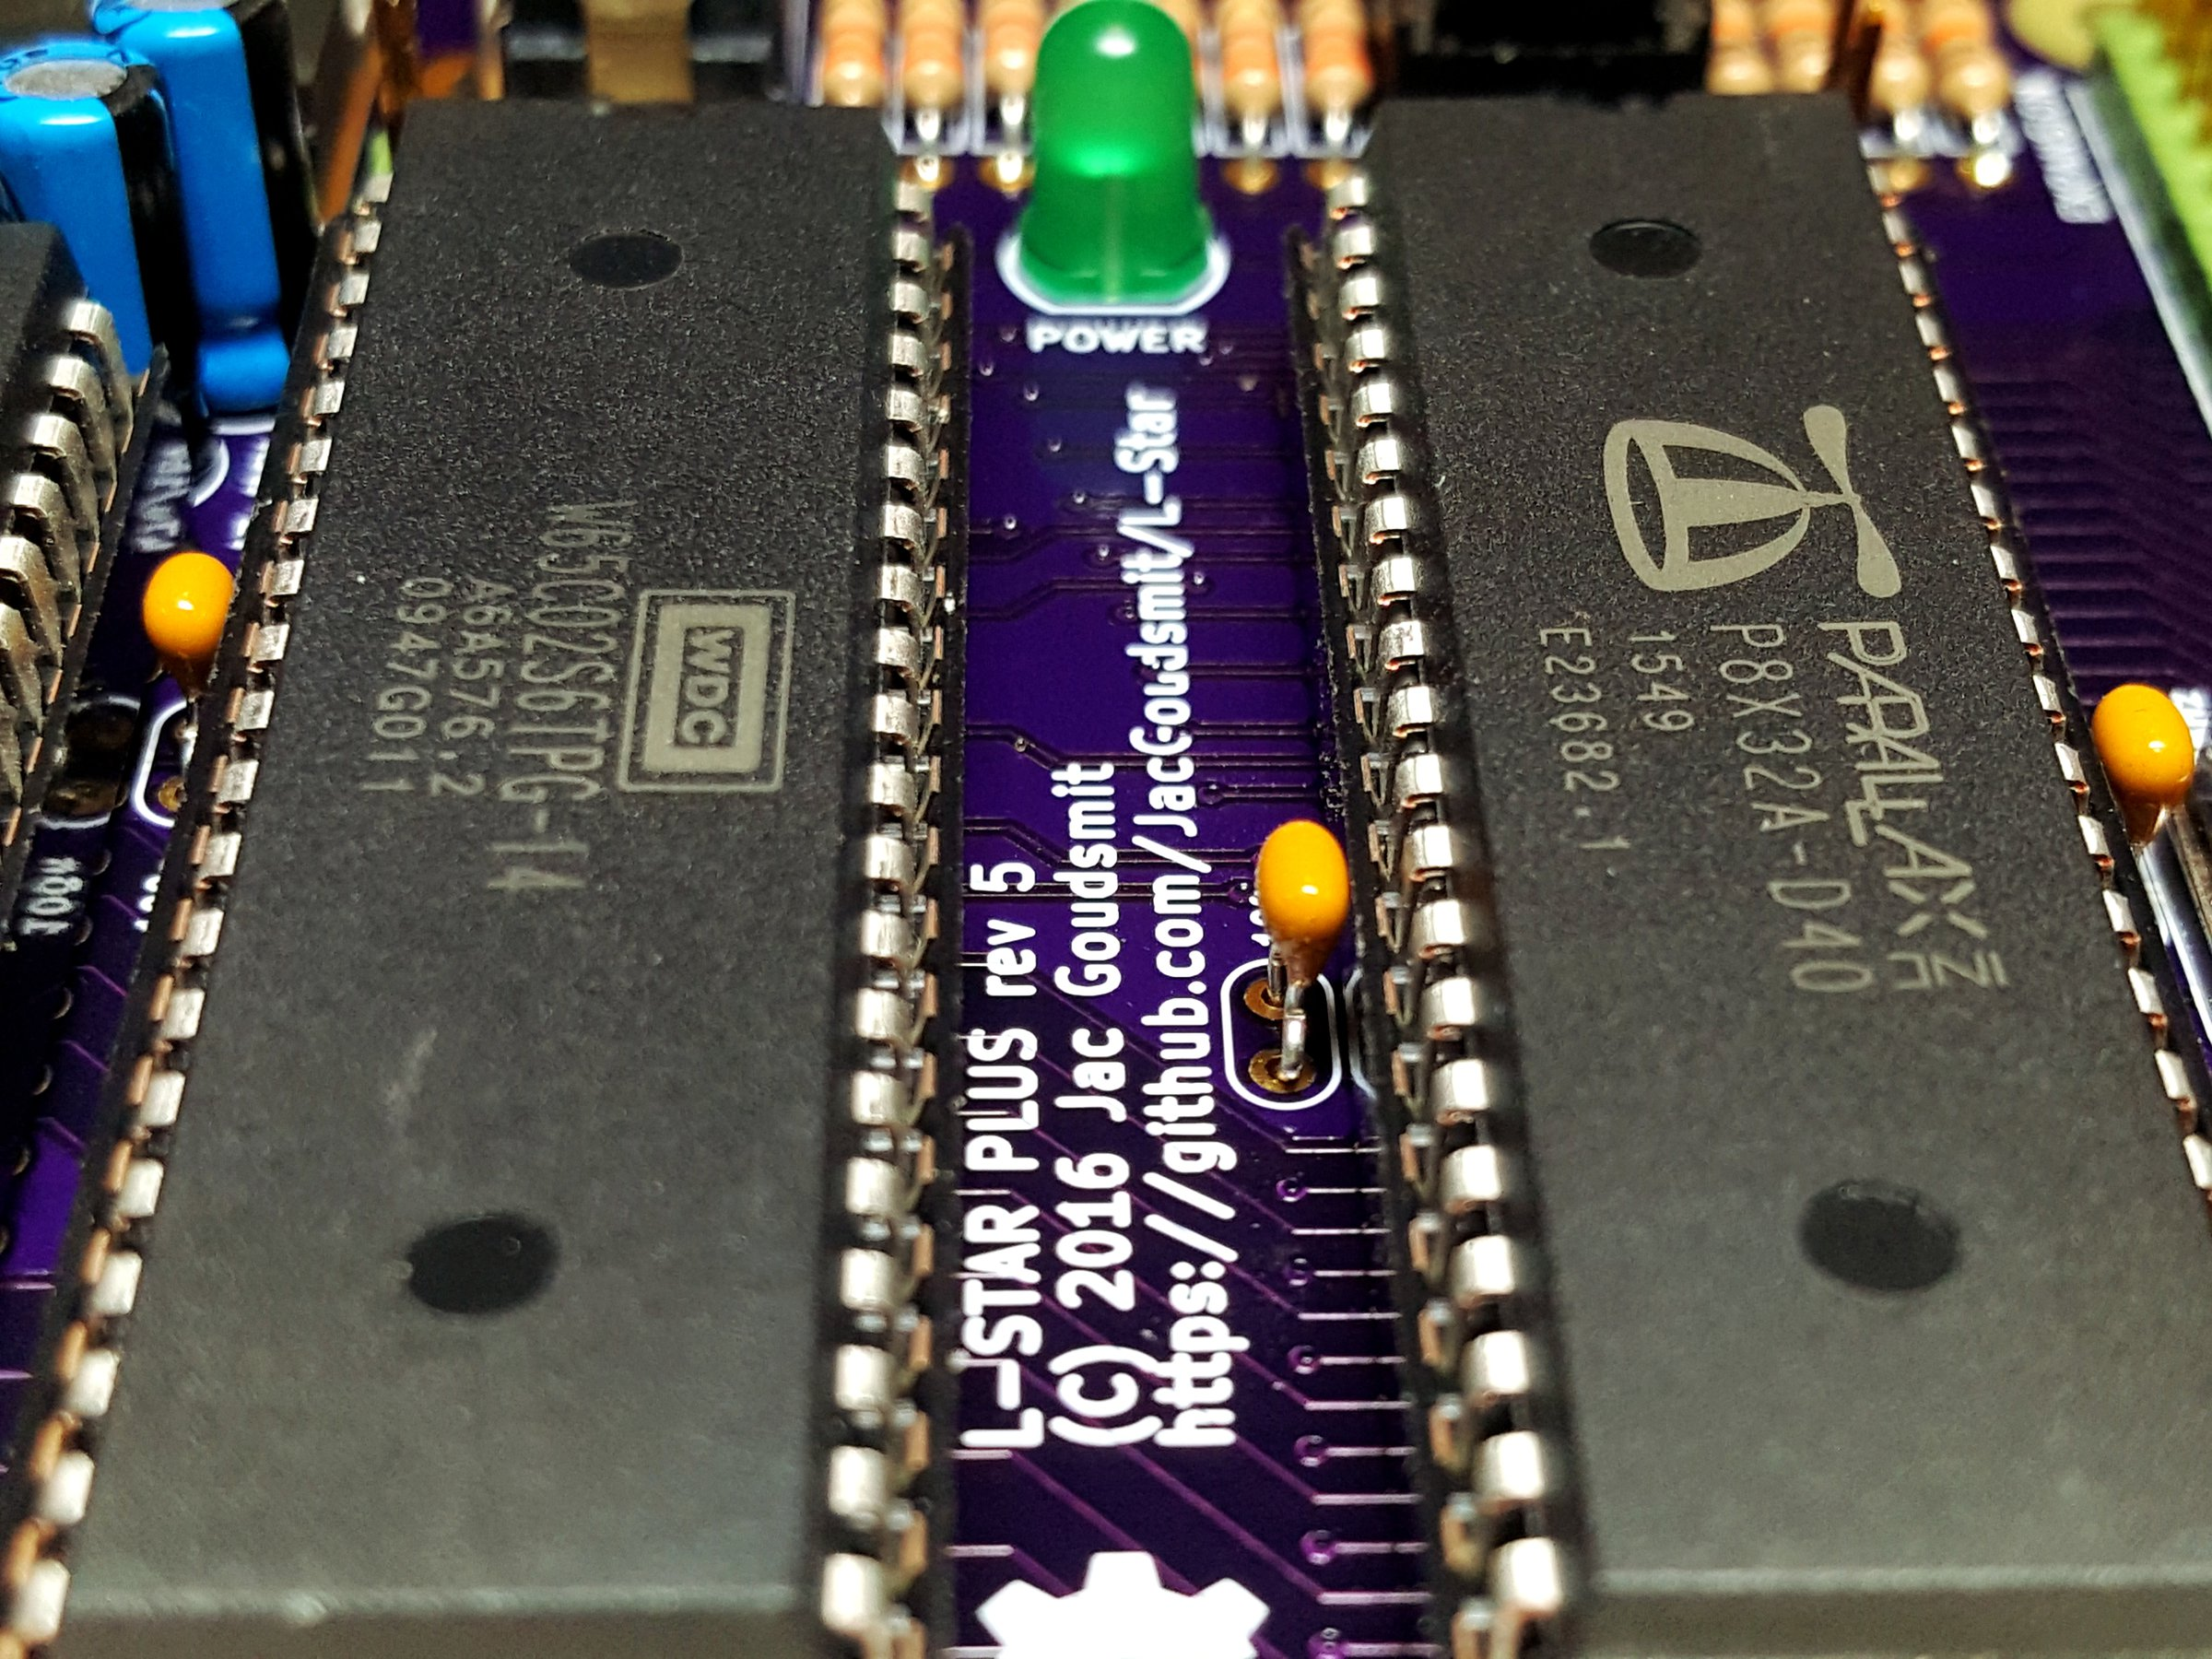 L-Star Plus: Software Defined 6502 Computer from Jac Goudsmit on Tindie